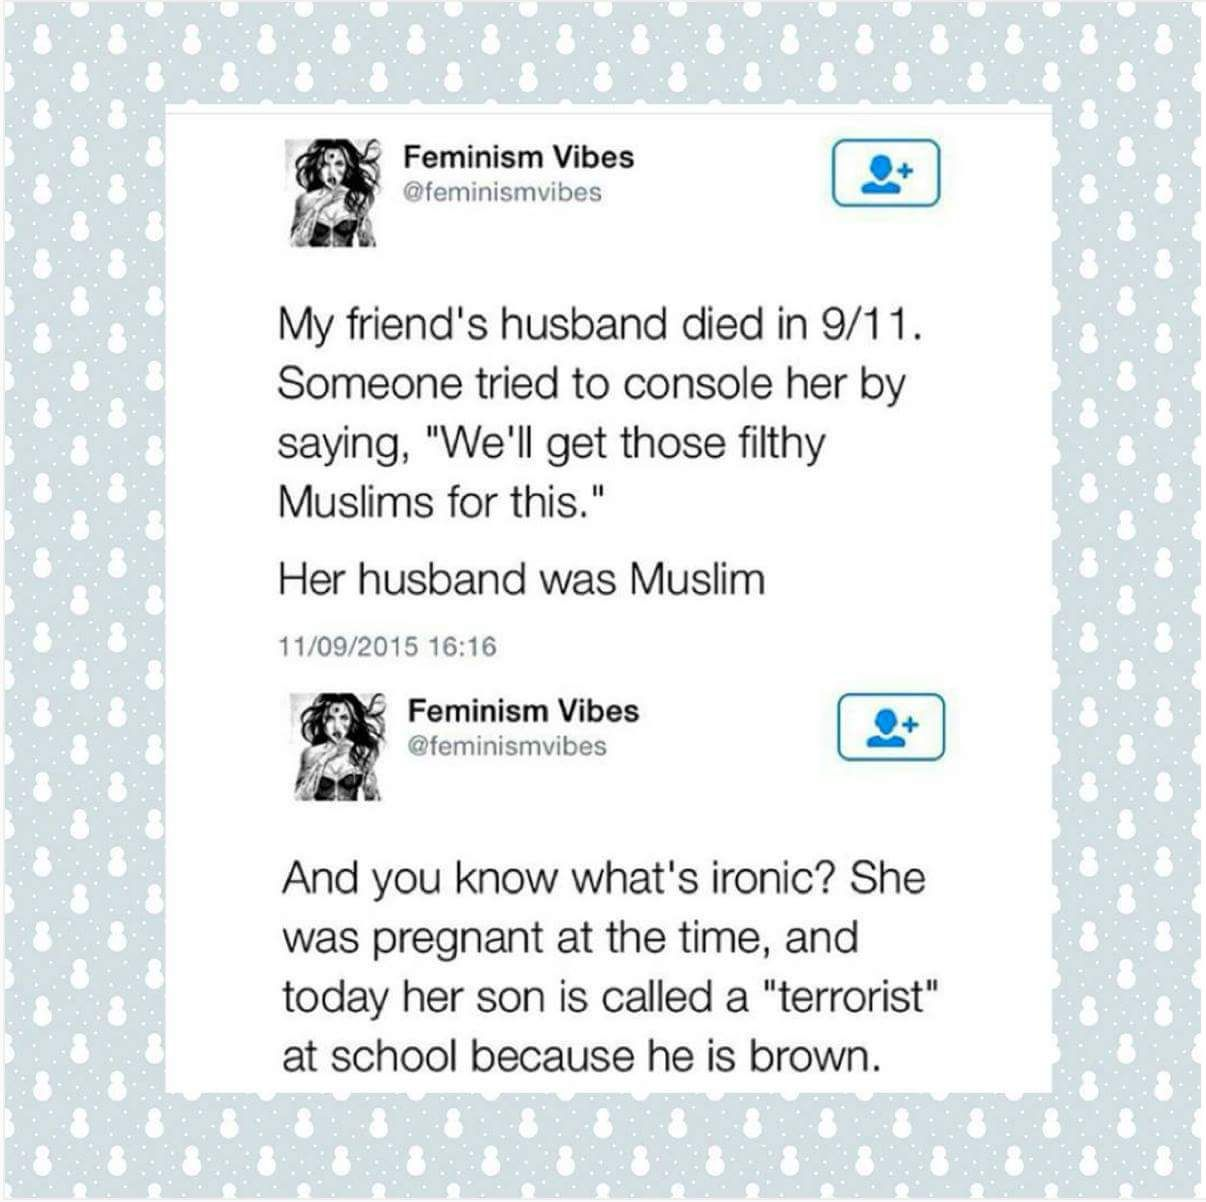 """""""My friend's husband died in 9/11. Someone tried to console her by saying, """"We'll get those filthy Muslims for this."""" Her husband was Muslim. And you know what's Ironic? She was pregnant at the time, and today her son is called a 'terrorist' at school because he is brown.""""  ~ Feminism Vibes"""